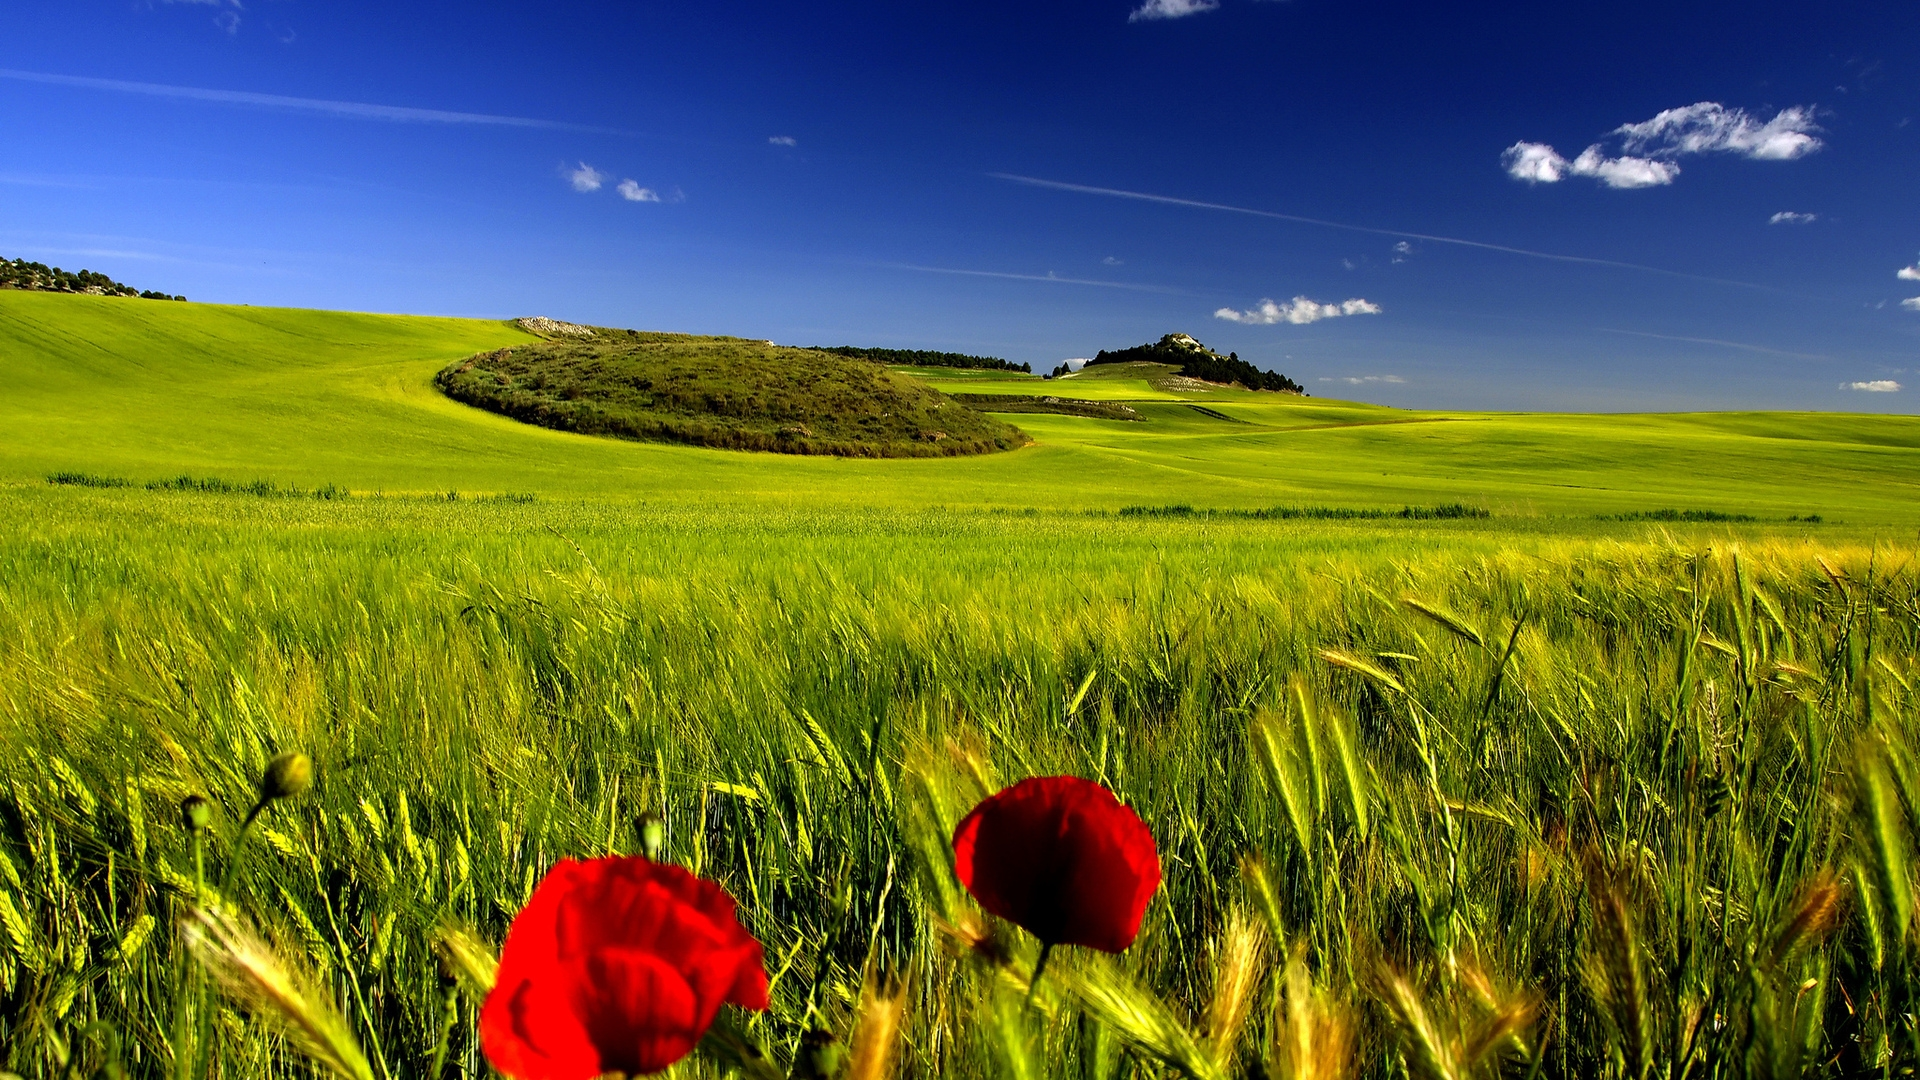 Open Field with Clear Skies Full 1080p Ultra HD Wallpapers 1920x1080